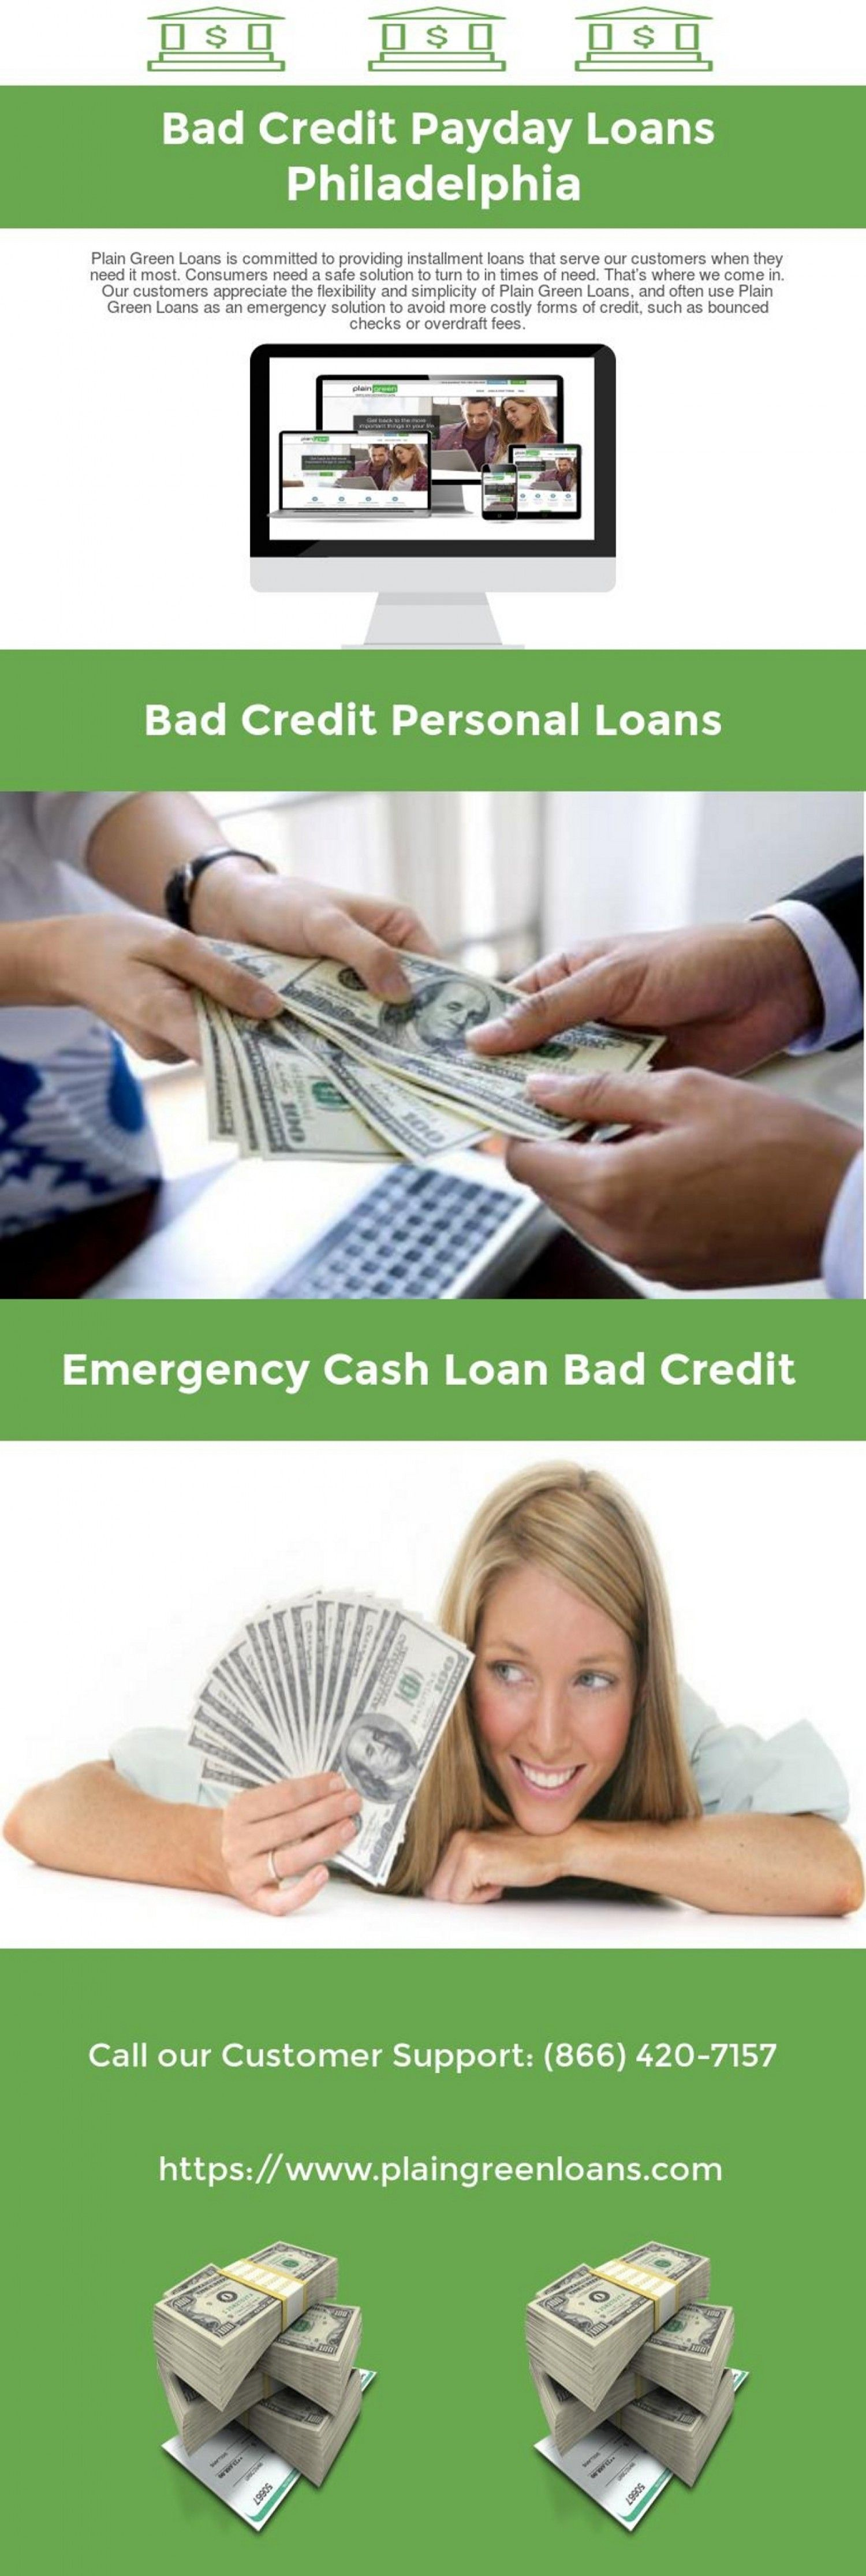 Bad Credit Payday Loans In Philadelphia Infographic Bad Credit Payday Loans Bad Credit Personal Loans Payday Loans